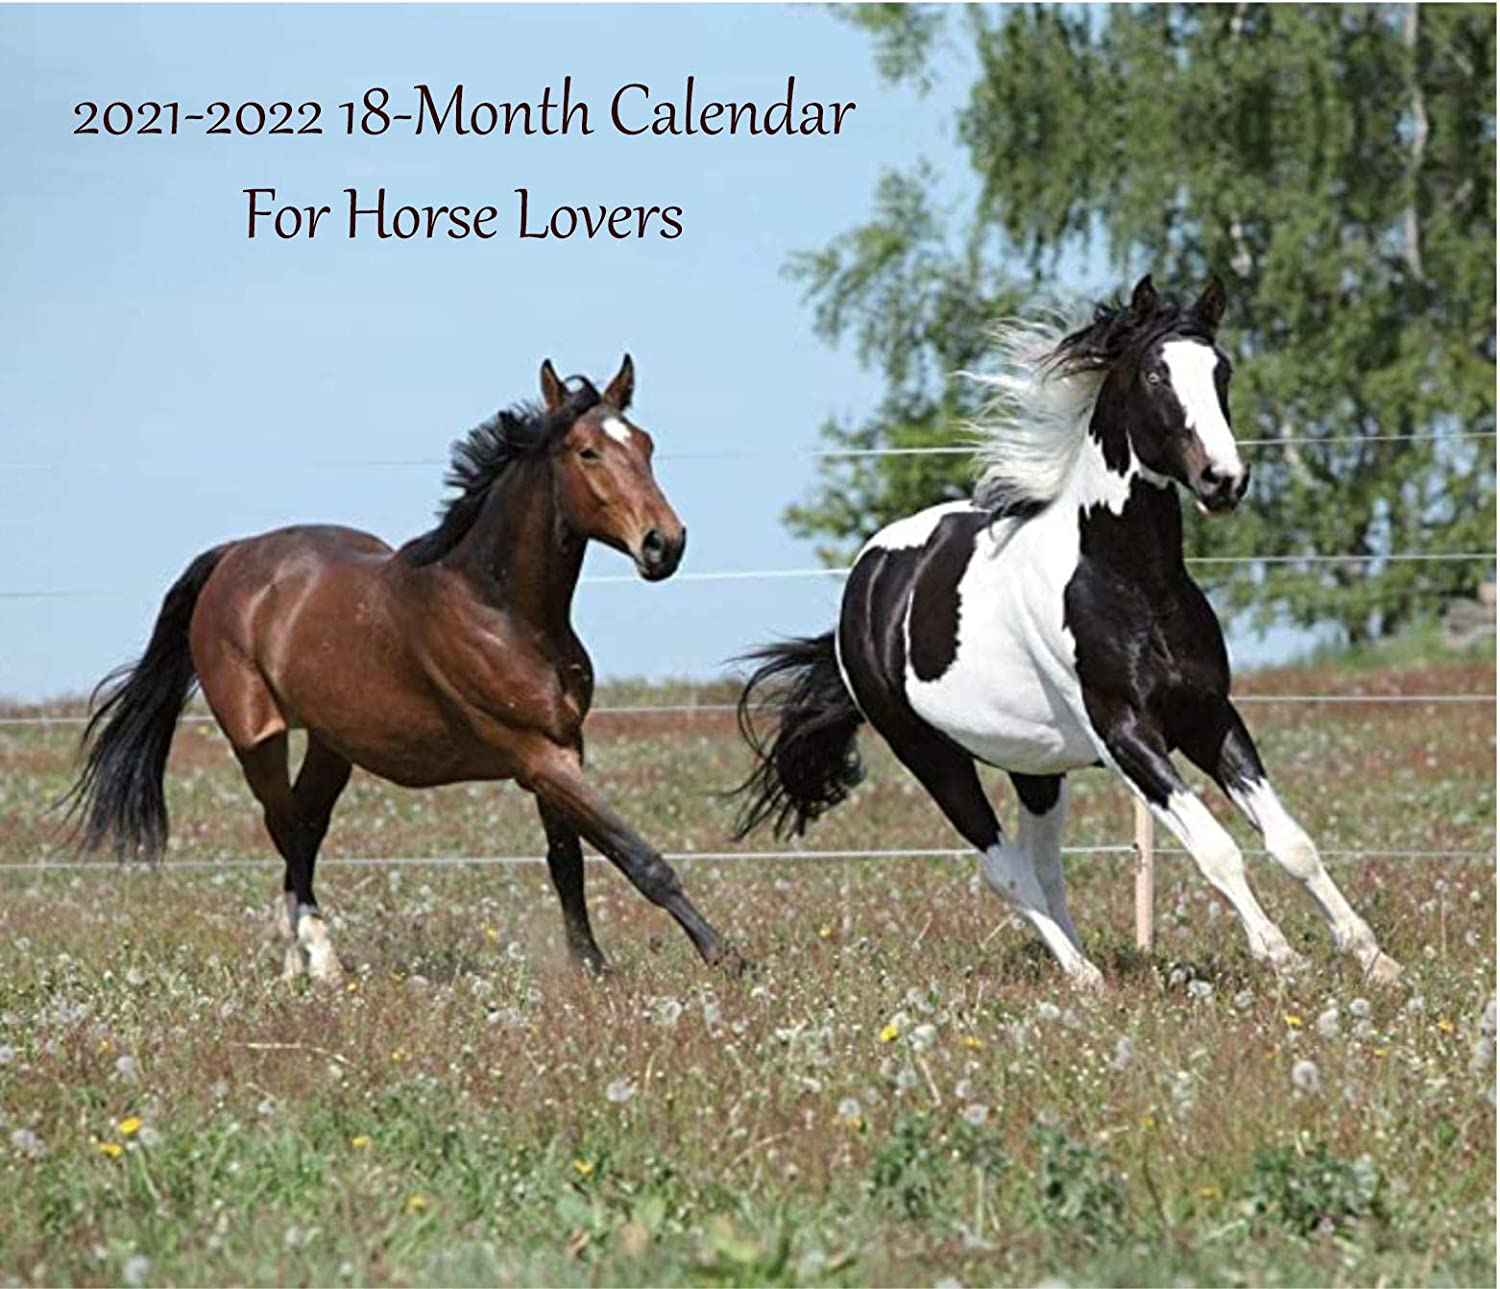 Horse Calendar 2022.2021 2022 Wall Calendar 14 X 12 Canadian And Us Holidays For Horse Lovers Amazon In Electronics